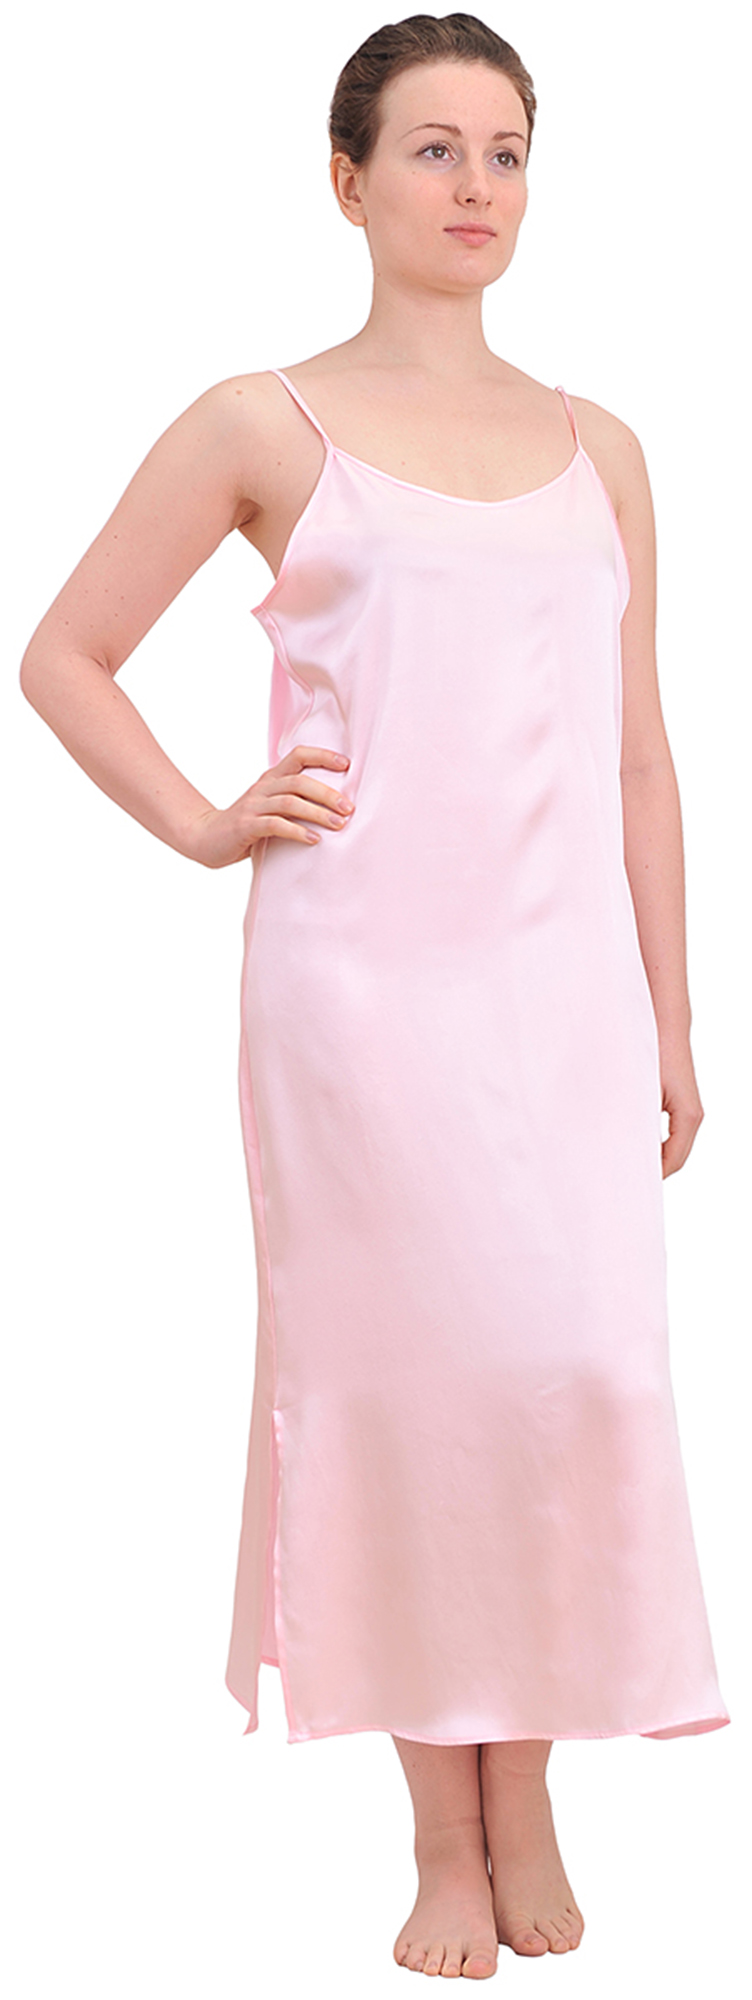 MARYCRAFTS WOMENS PURE SILK NIGHTIE NIGHT GOWN SLEEP DRESS ... - photo#11